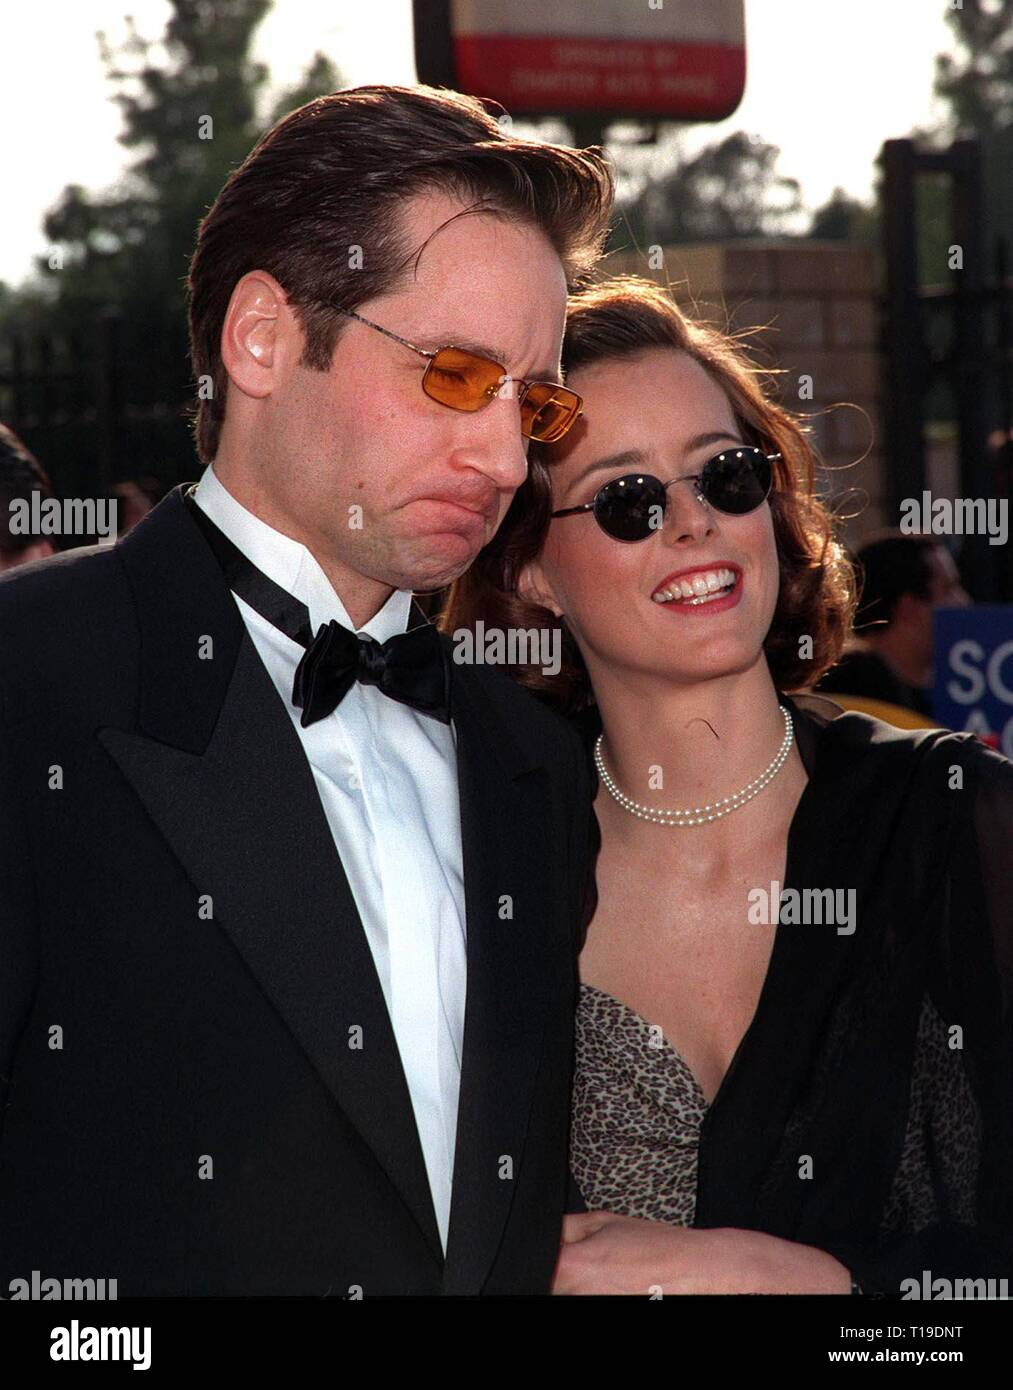 LOS ANGELES, CA - March 8, 1998: 'X-Files' star DAVID DUCHOVNY & wife TEA LEONI at the Screen Actors Guild Awards in Los Angeles. - Stock Image